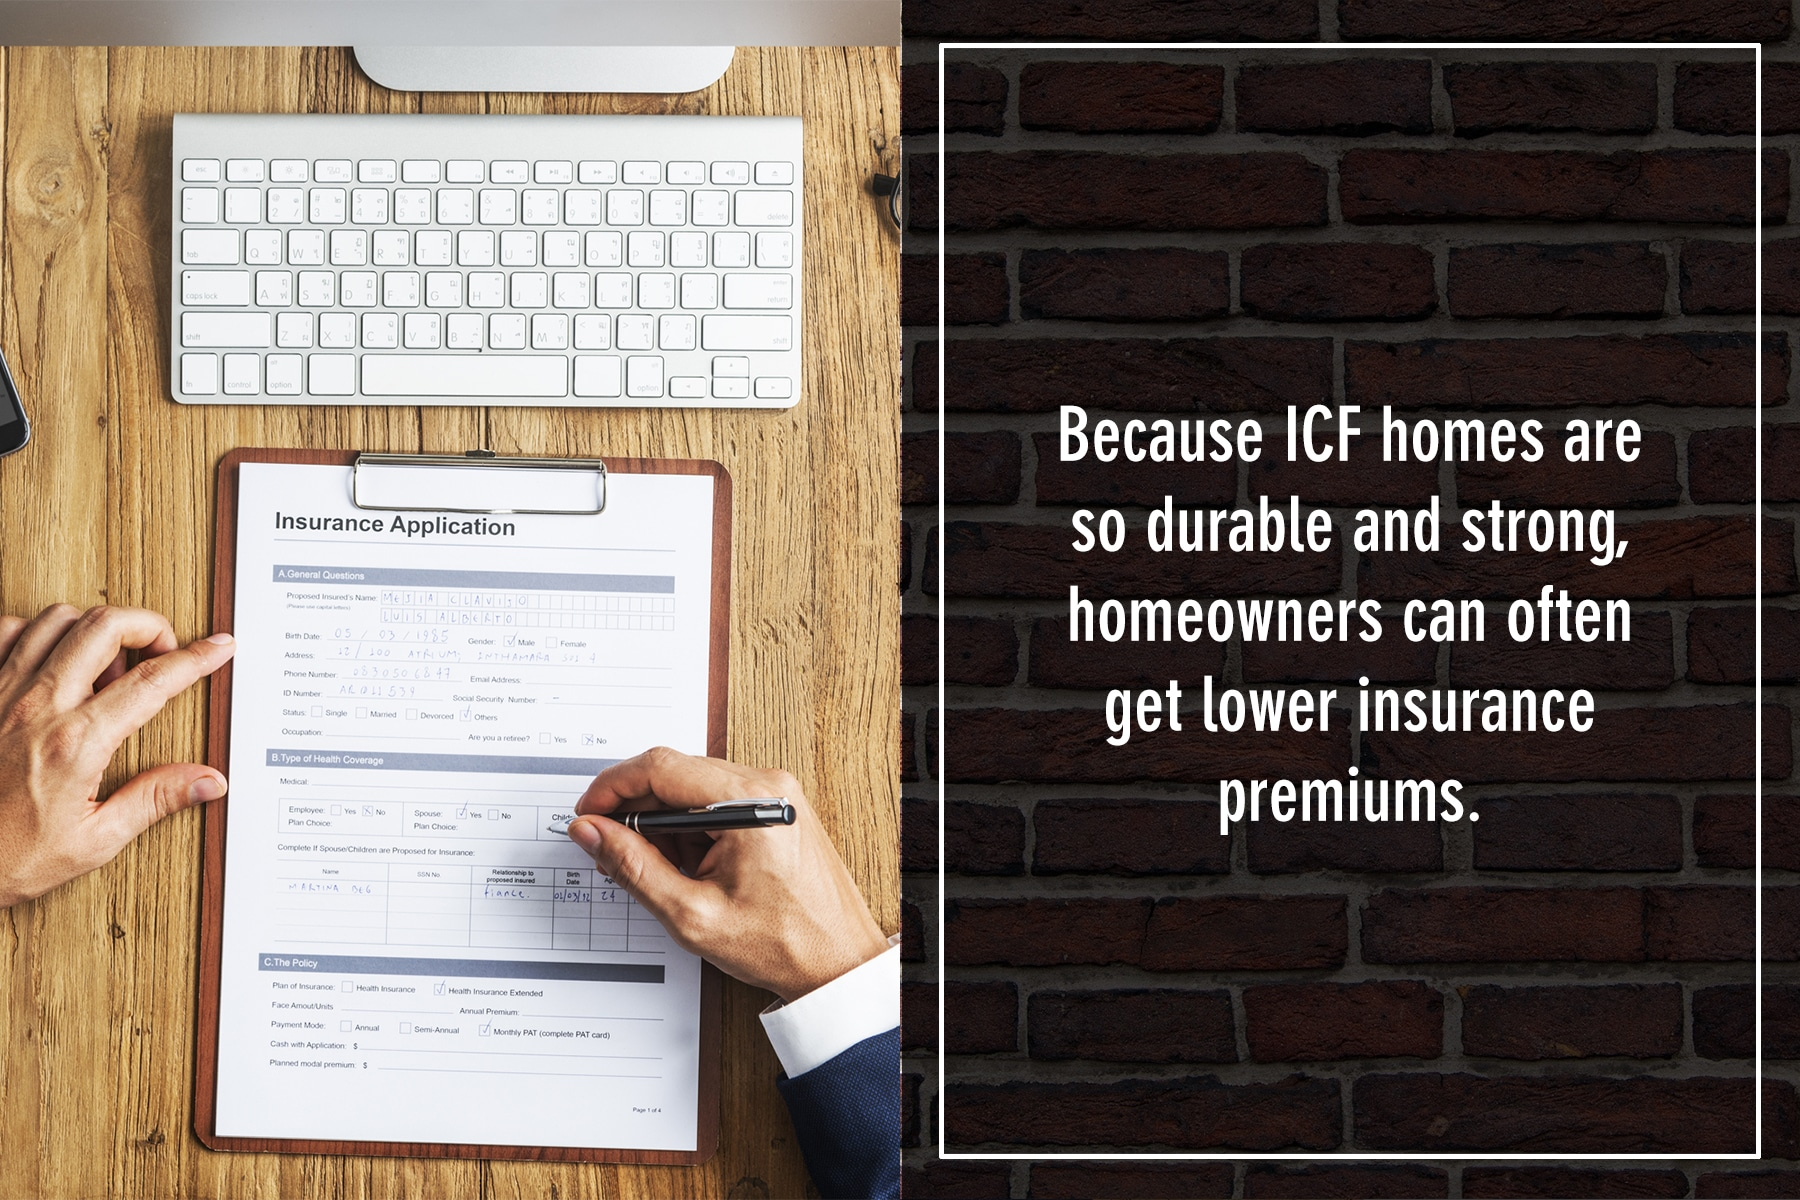 ICF homes often result in lower insurance premiums for homeowners